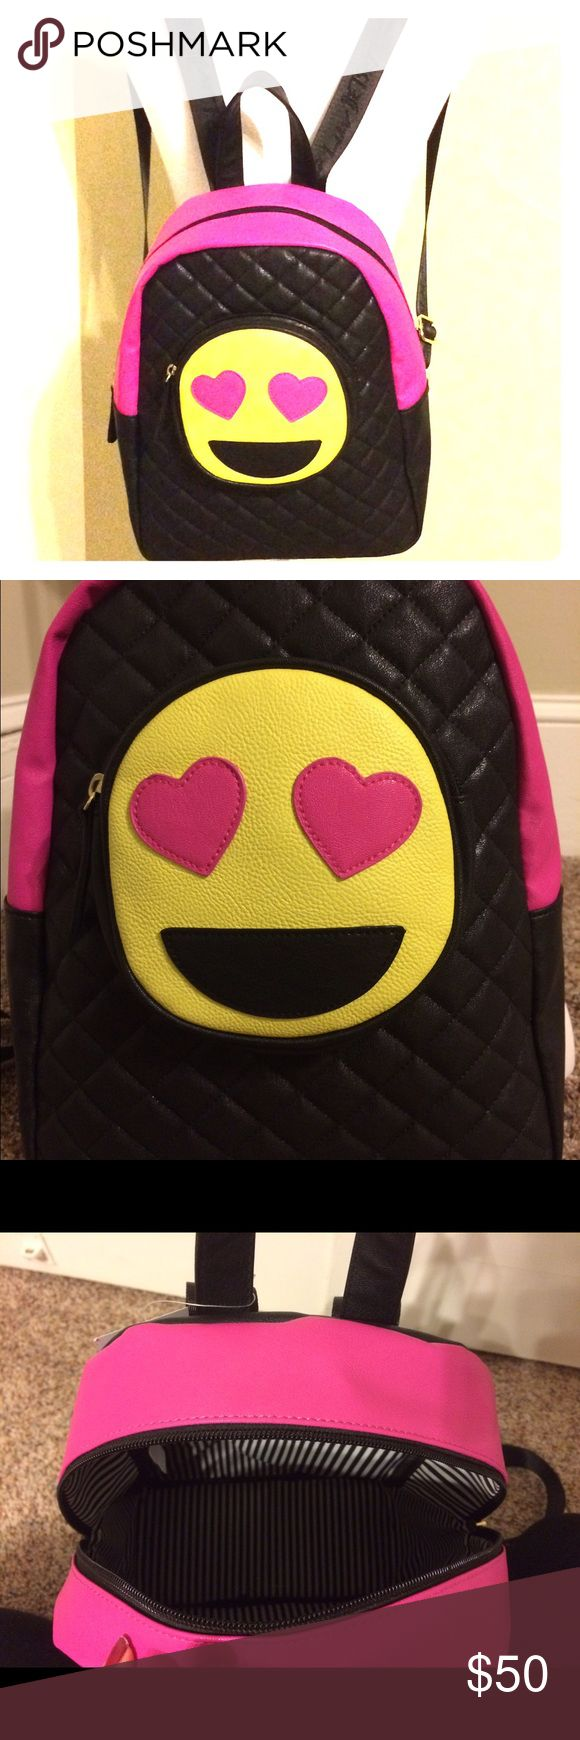 """⚡️FLASH SALE⚡️NWT Betsey Johnson emoji backpack NWT Betsey Johnson heart eyesemoji backpack. Black on the front & back & hot pink on the sides. White & black stripes on the inside w/ """"Luv Betsey by Betsey Johnson"""" written in hot pink. Large heart eye emoji on the front that is also a zip closure pocket & diamond stitch detail throughout the entire backpack. Straps say """"Luv Betsey"""", & has gold emblem on the side. Inside features 1 lg zip pocket, 3 pen slots & 1 cell slot. Approximate…"""